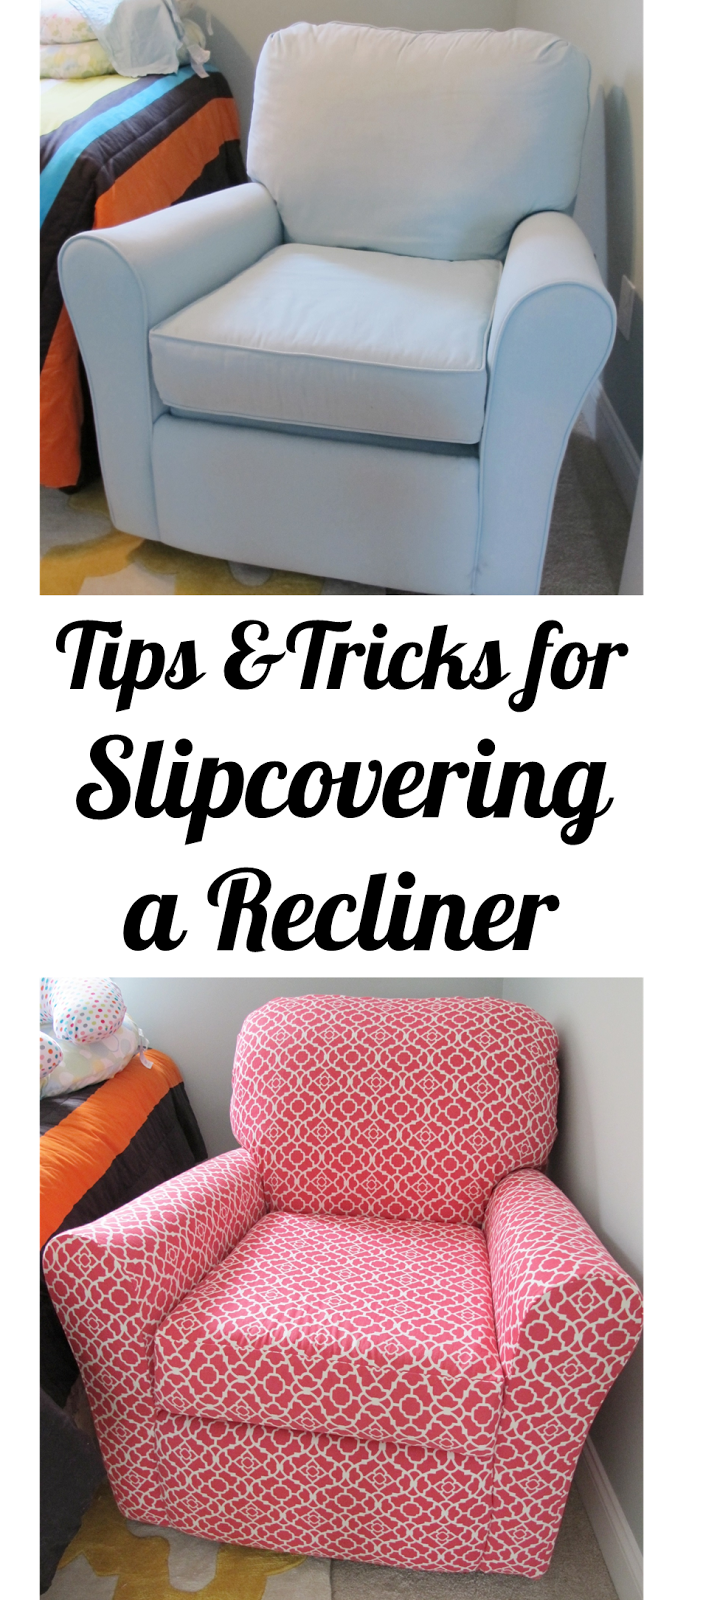 Awesome Post Full Of Tips And Tricks!!! BonnieProjects: Tips U0026 Tricks For  Slipcovering A Recliner